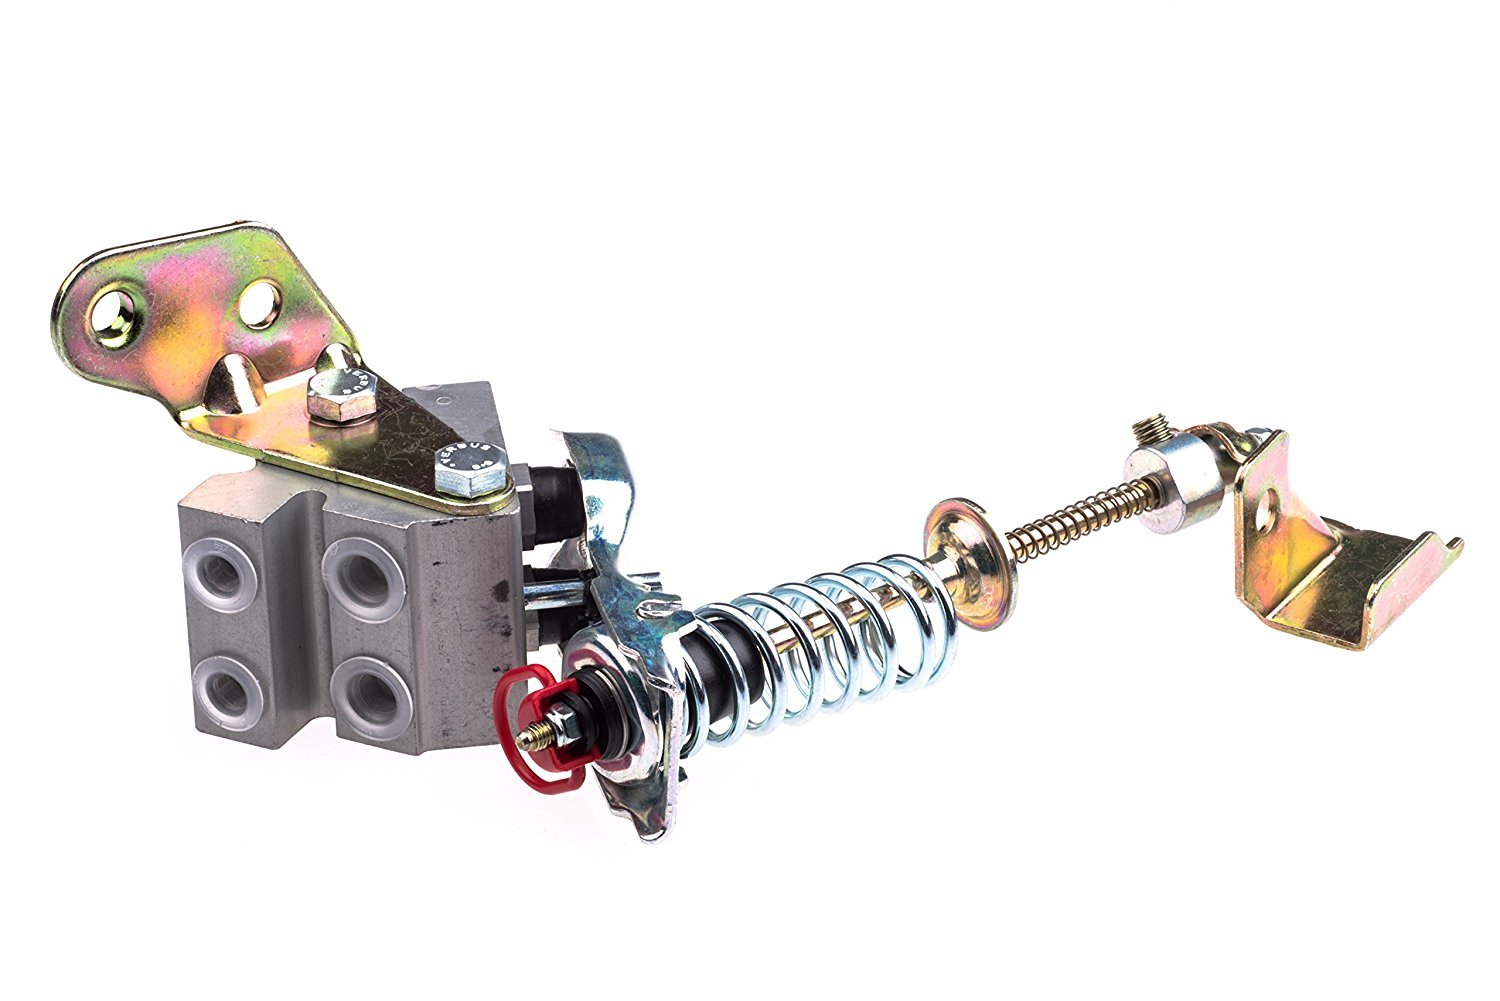 Ford F6DZ-2B547-AD - VALVE ASY by Ford